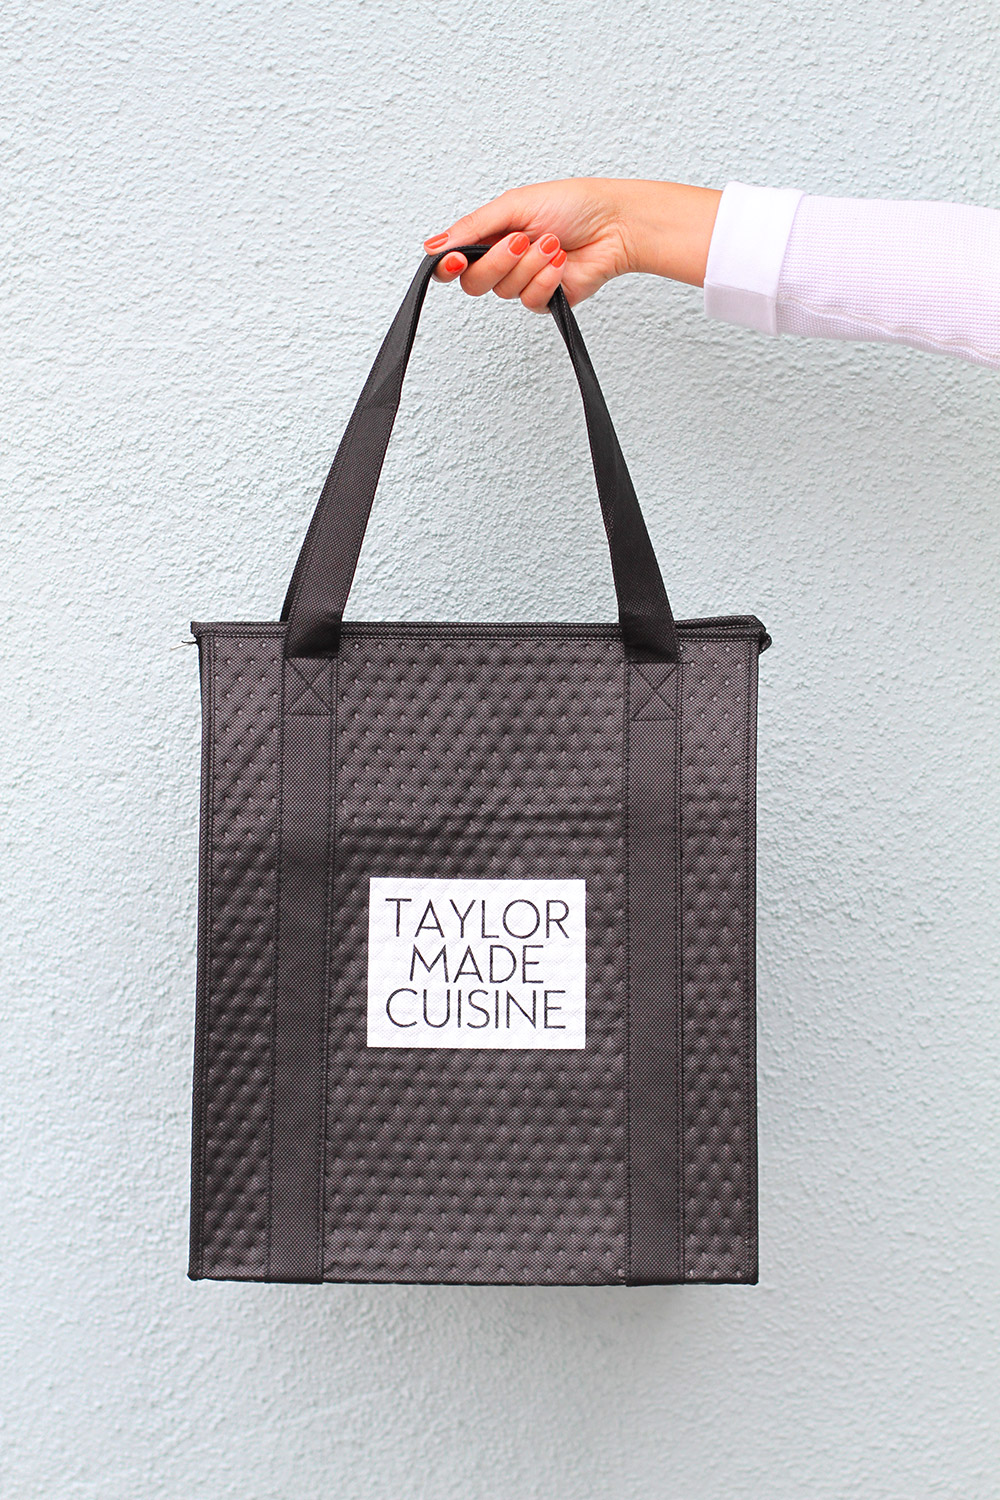 Taylor-Made-Cuisine-Insulated-Bags.jpg